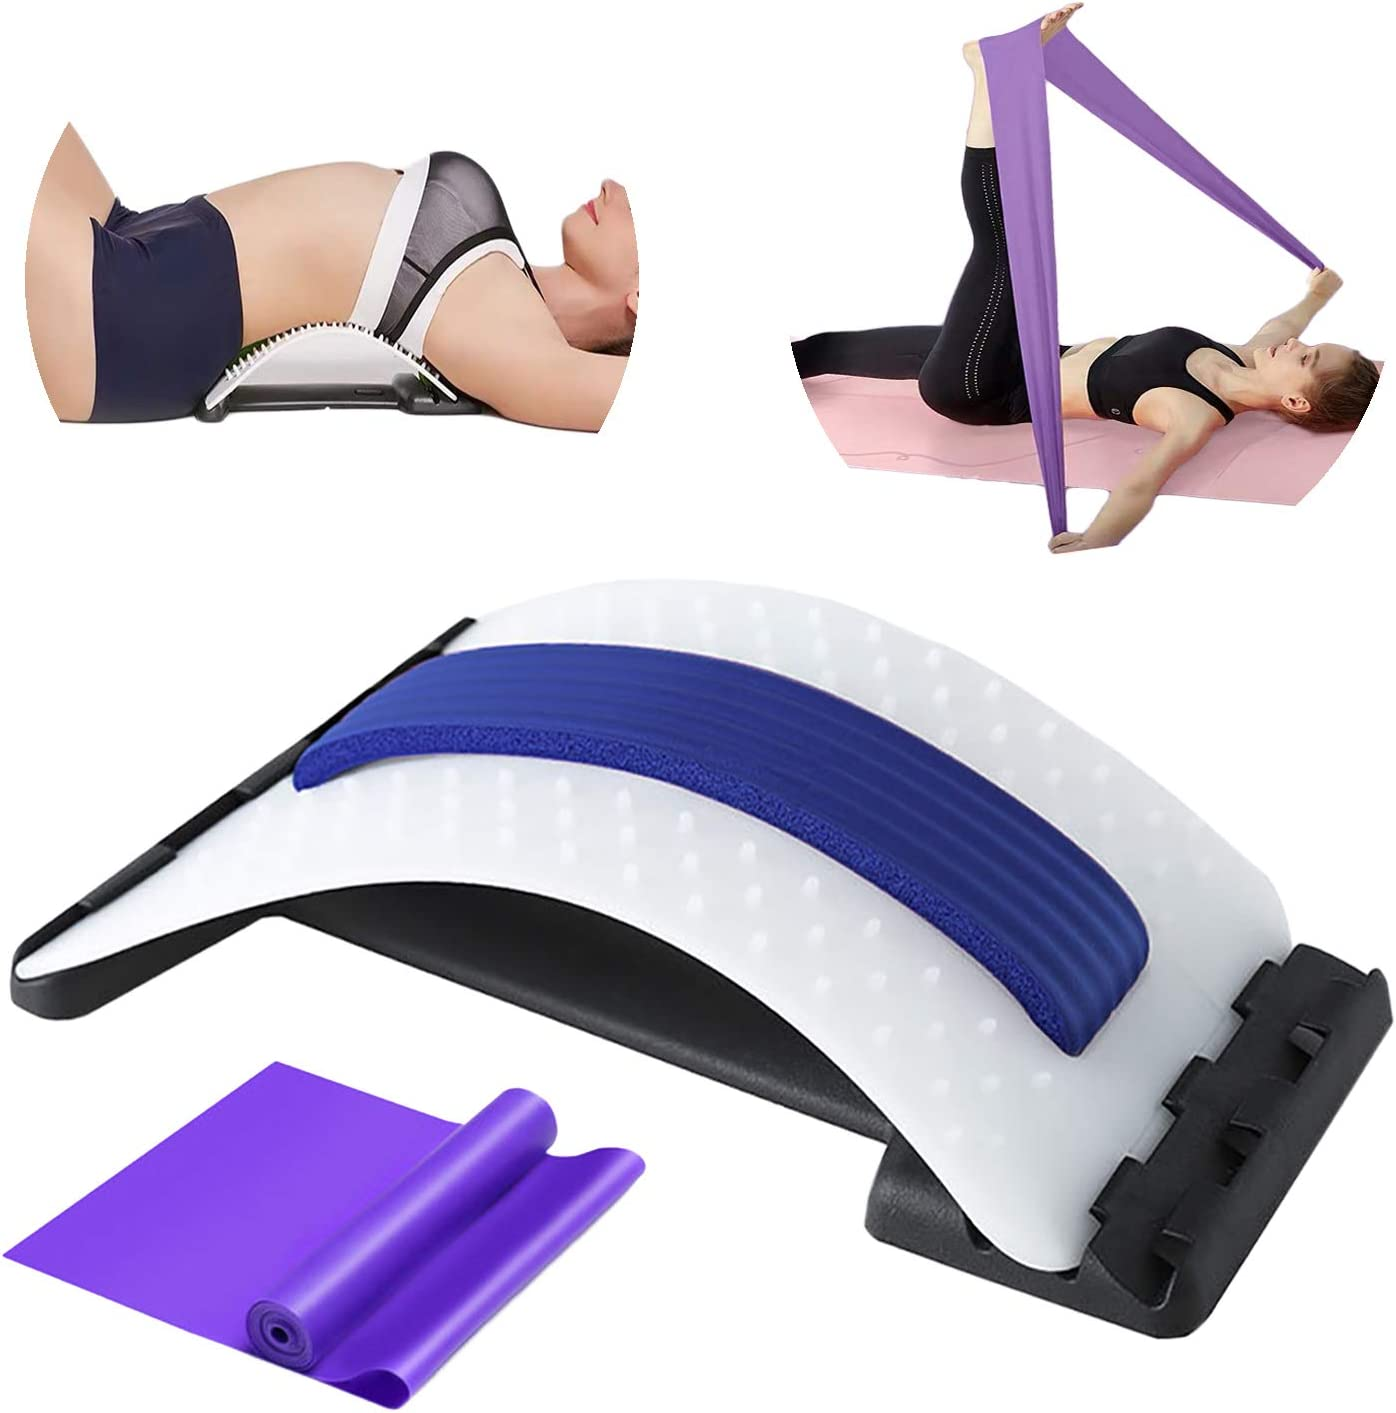 2-in-1 Back Stretcher for Spin Save money store Relief Lower Pain